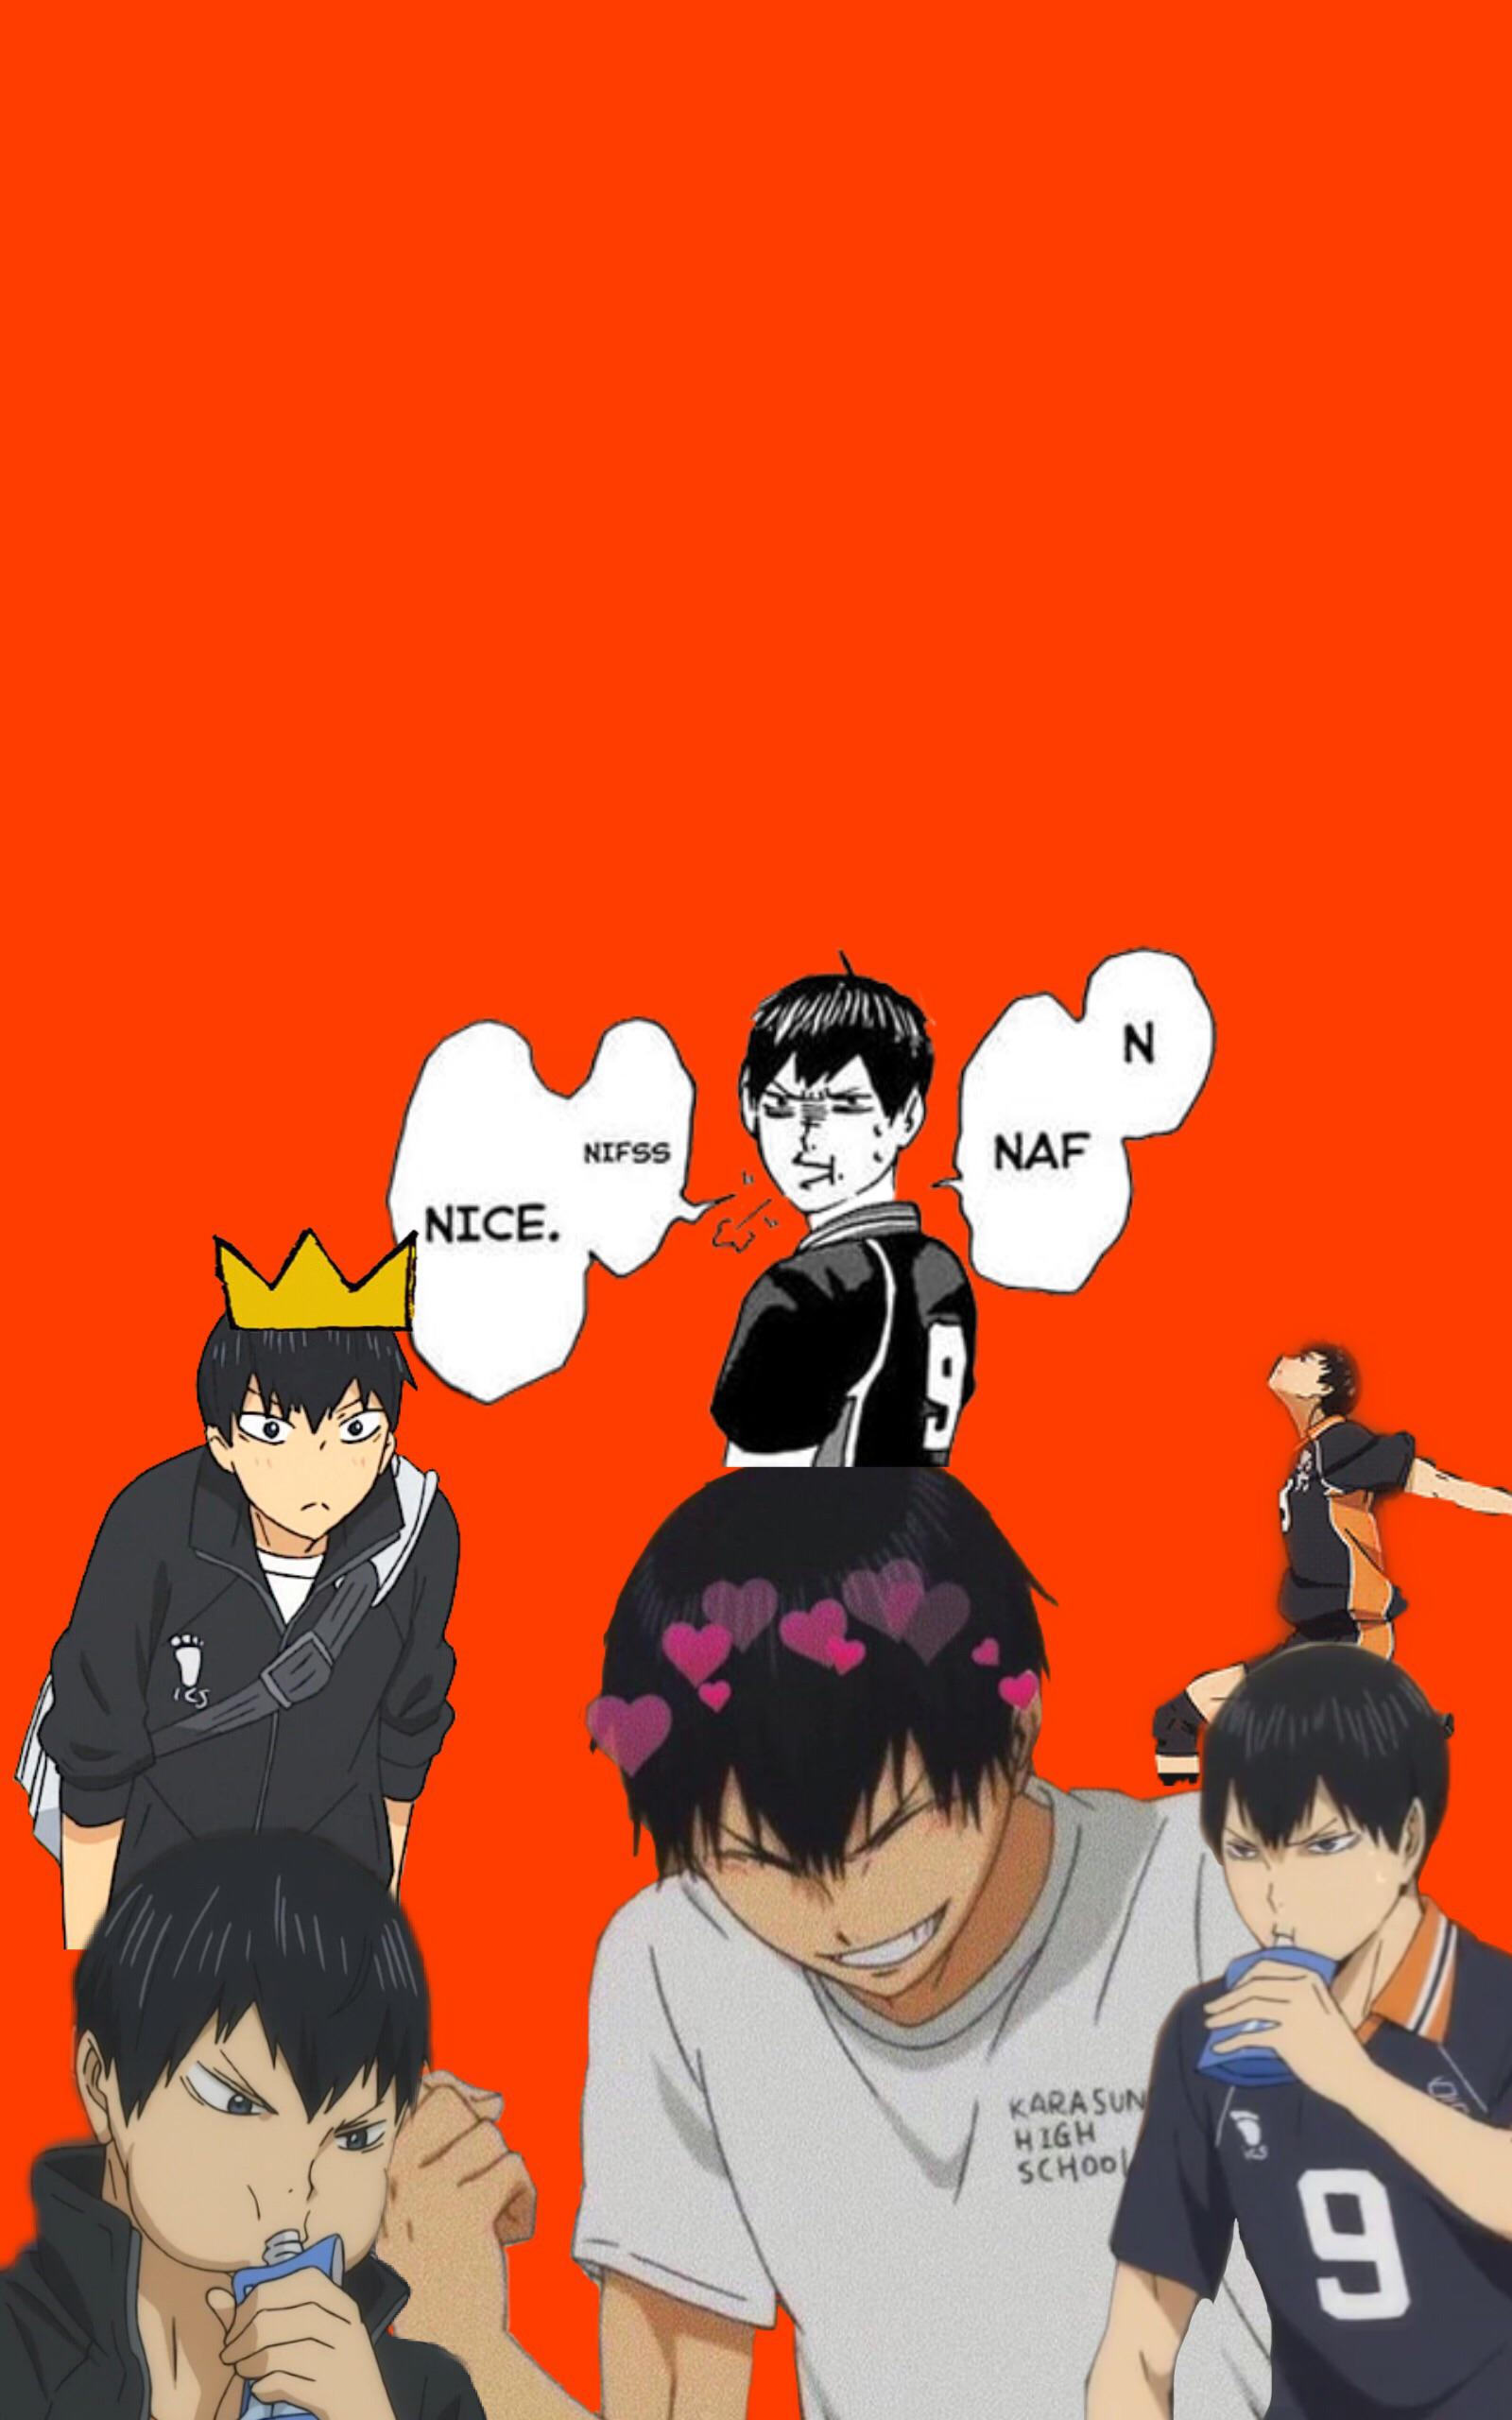 Haikyuu Funny Wallpapers - Wallpaper Cave